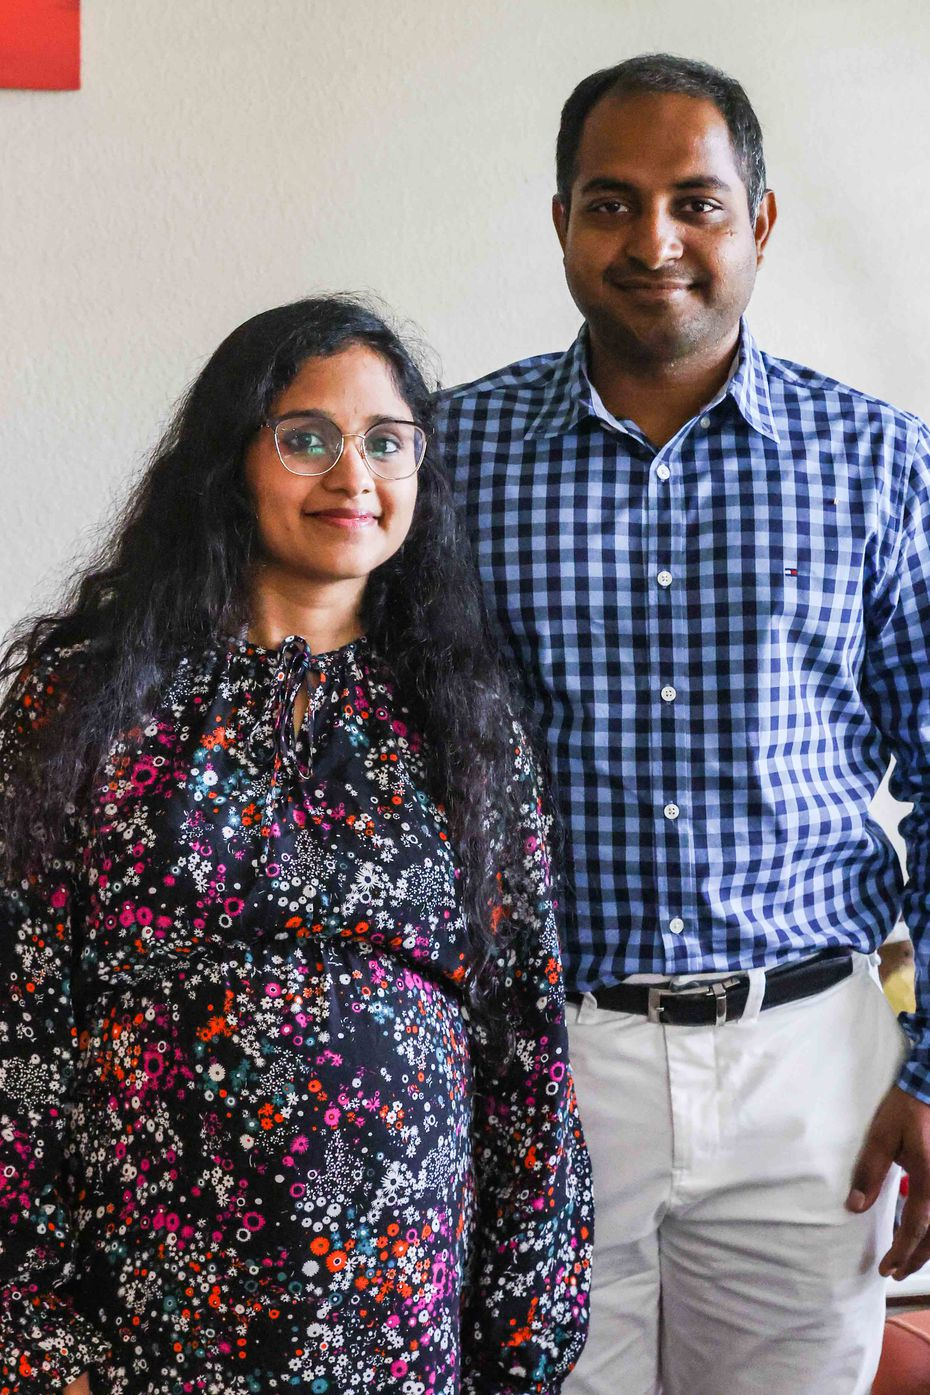 Gowri Pujitha Appana (left) and Kartheek Veeravalli, who have worked for years in startups and the financial services sector in D-FW, wanted to get more involved in the India relief effort so they could see the impact themselves.